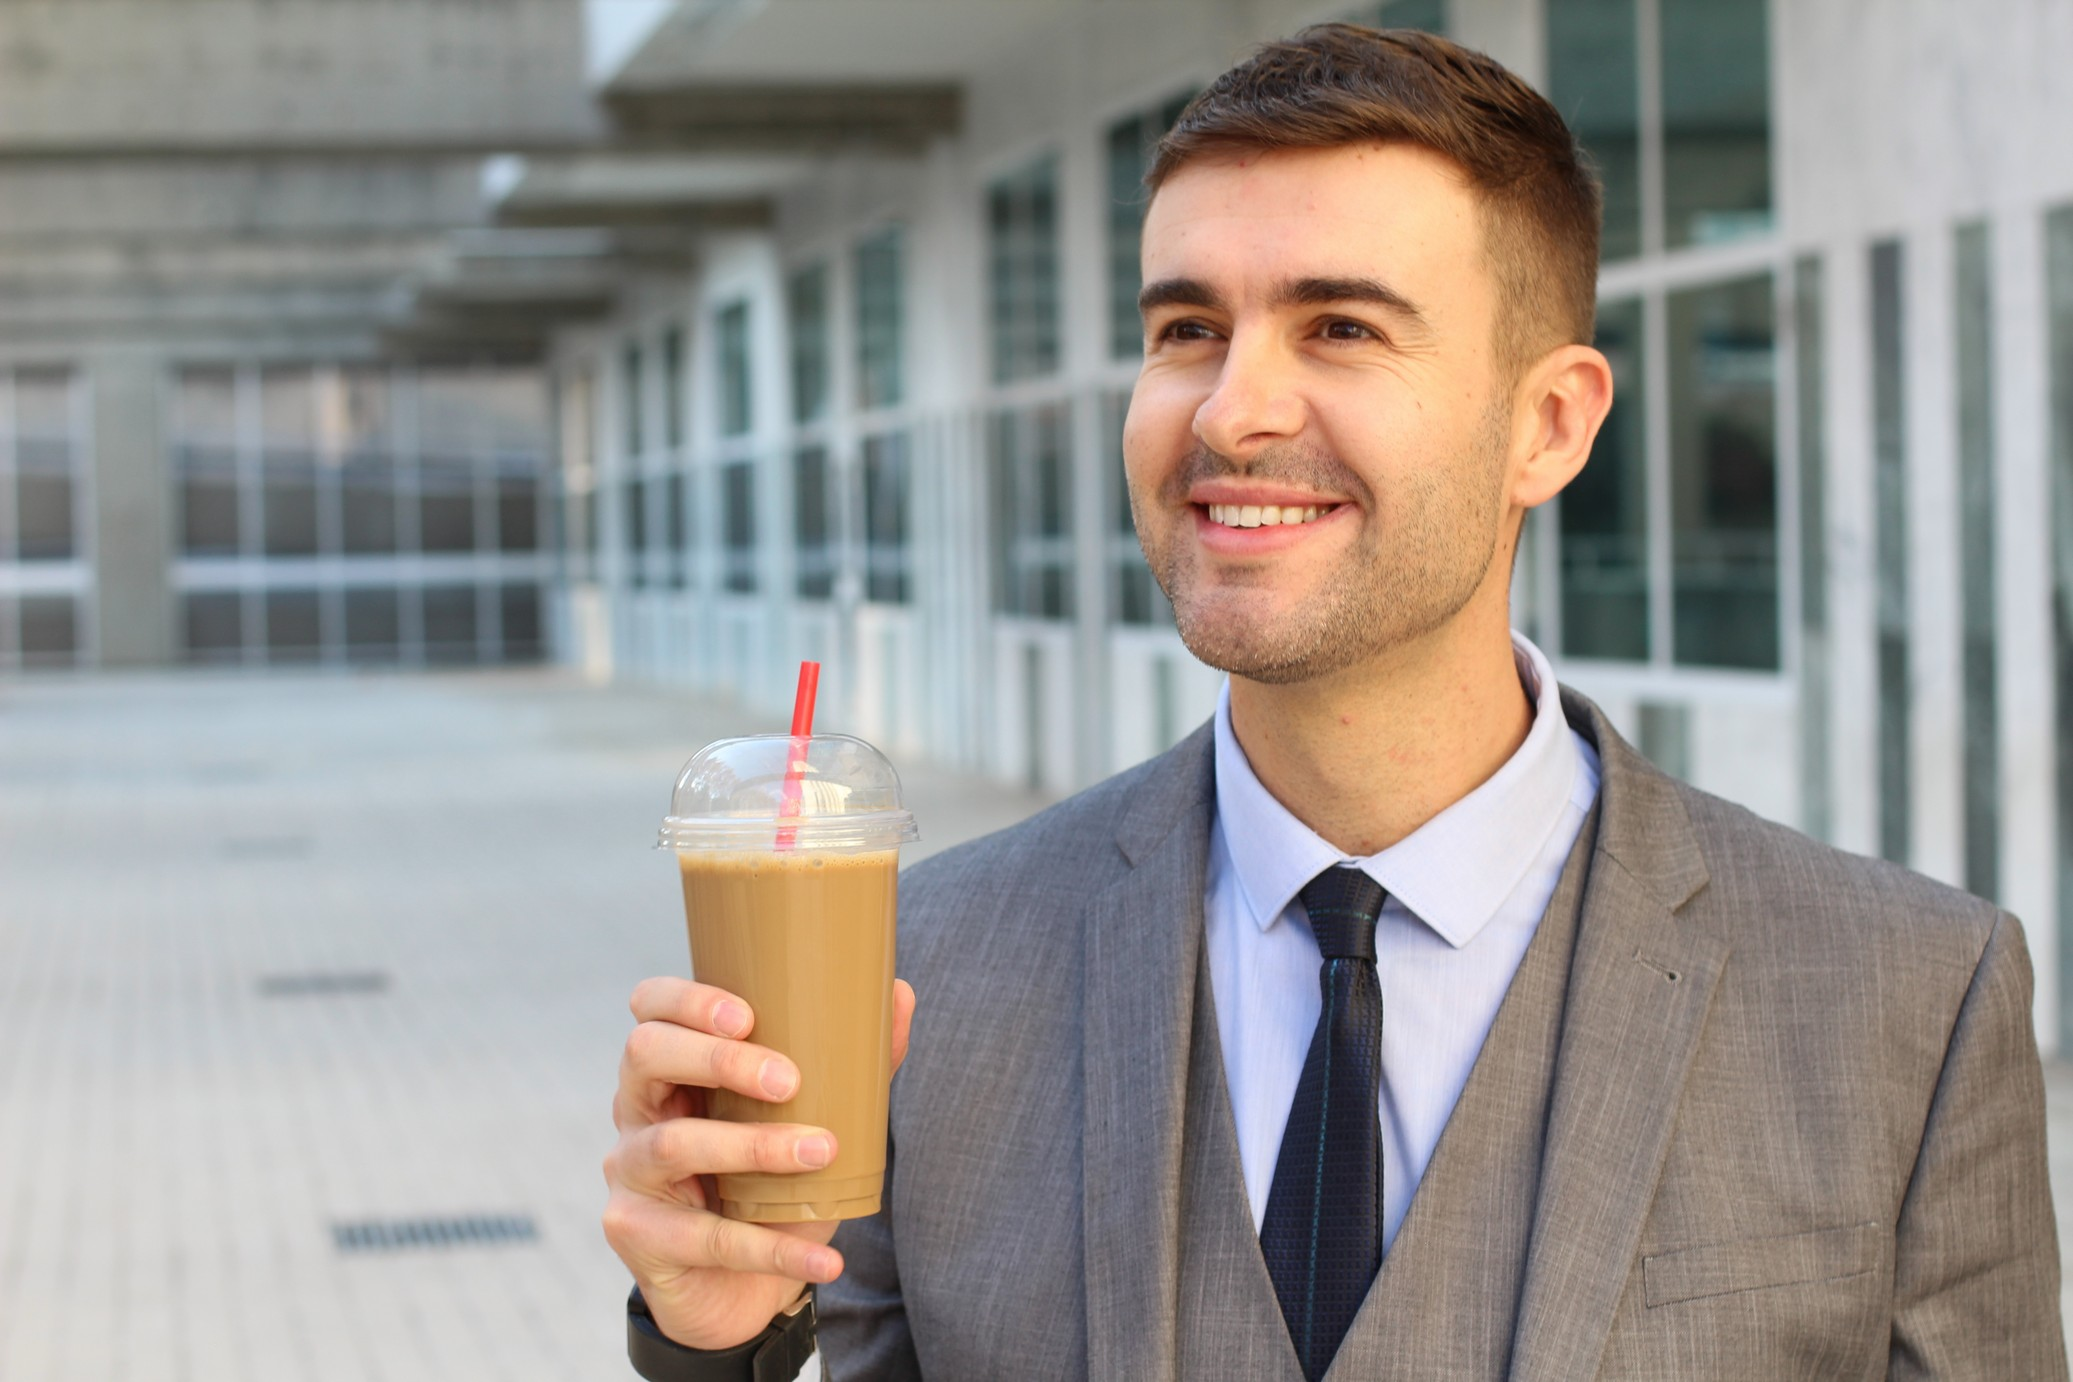 Phoenix Health and Wellness | Cold Brew Coffee Products | Break Room